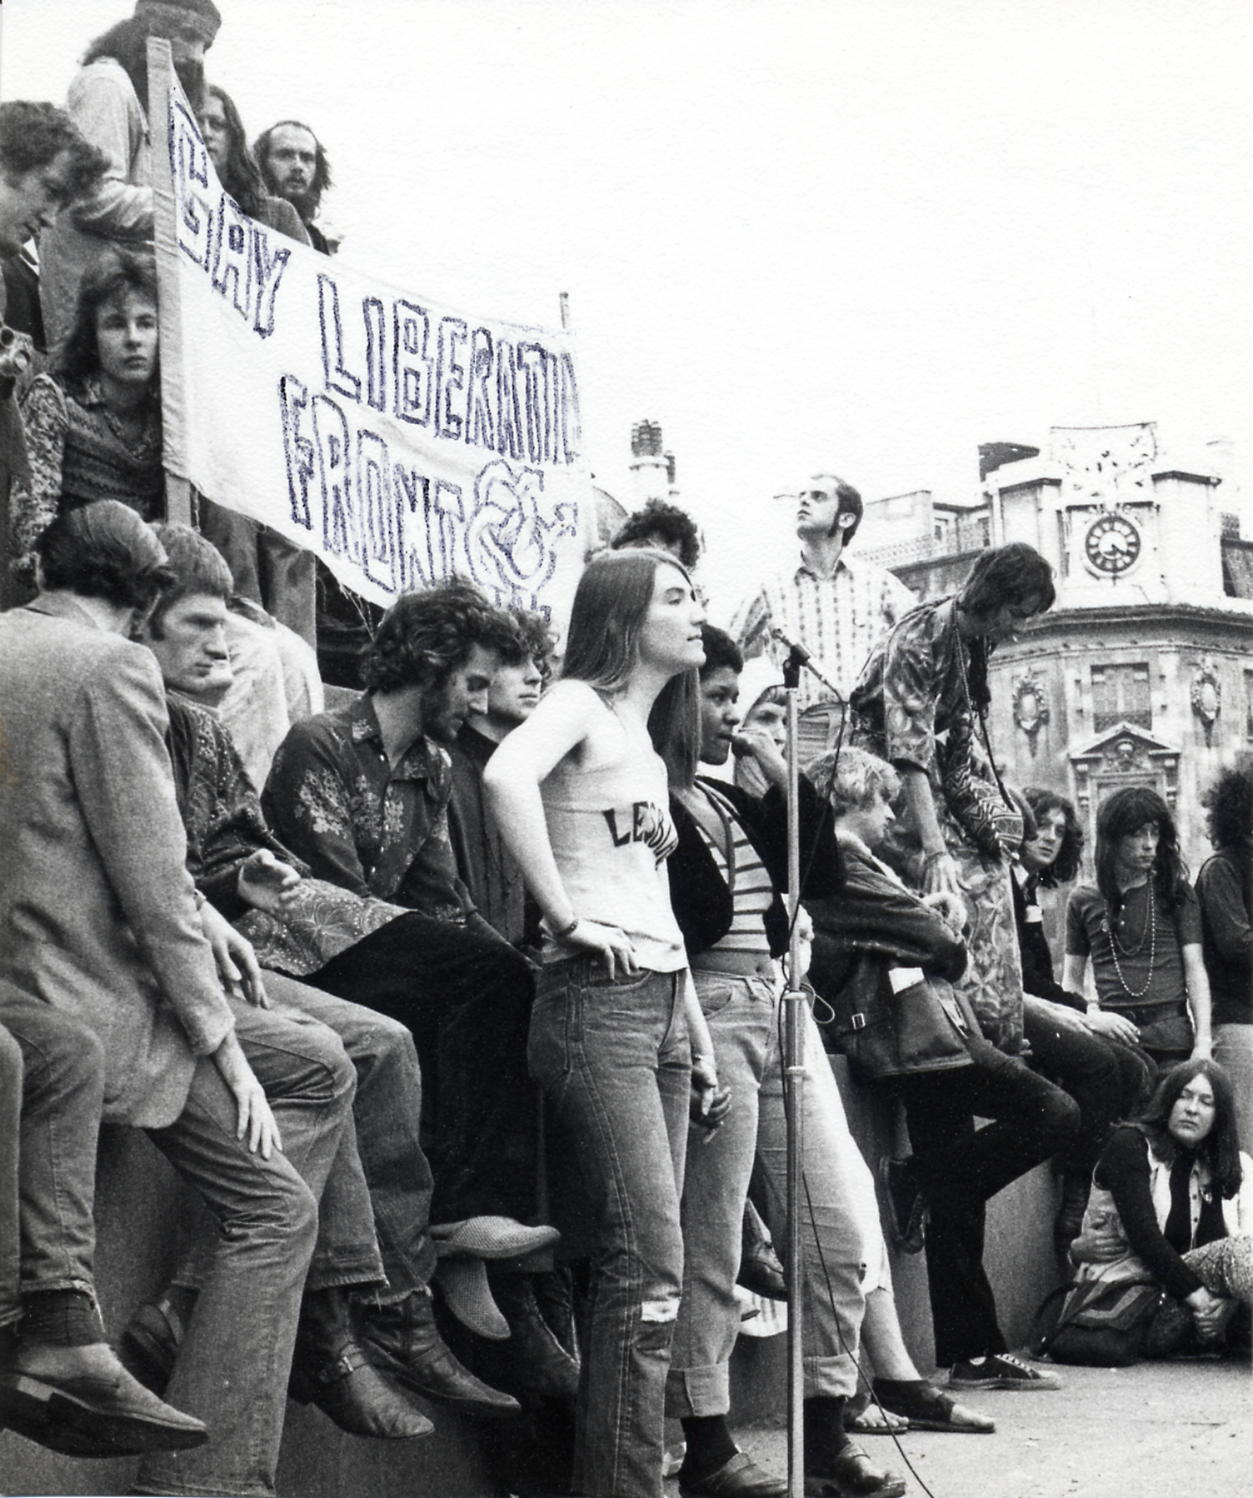 A Gay Liberation Front march in the 1970s